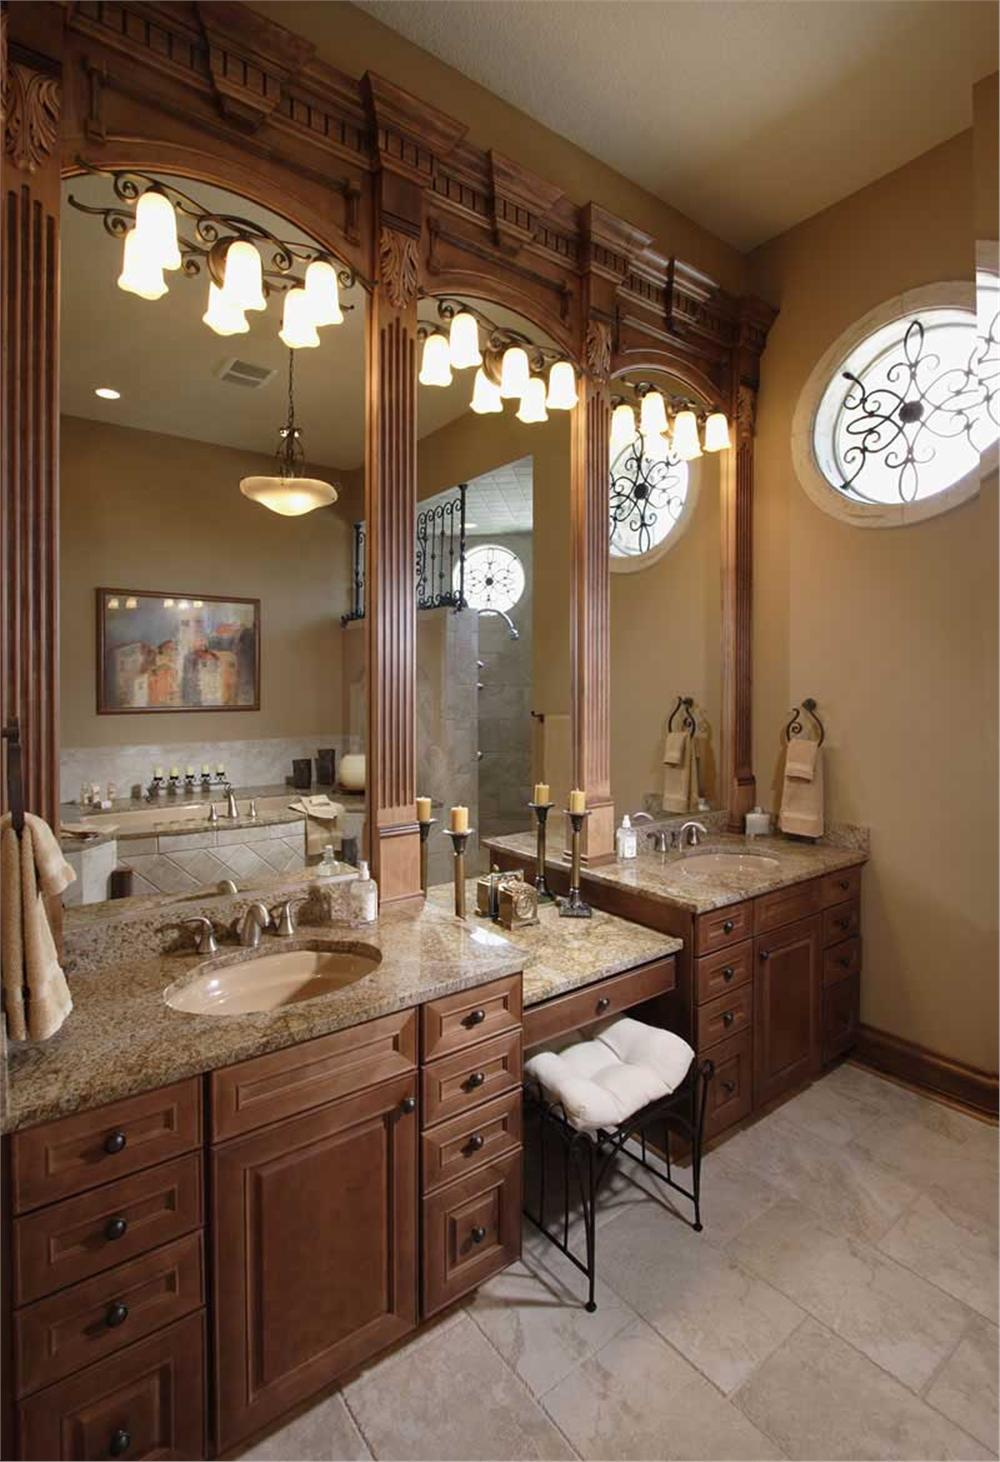 Two Vanity Bathrooms Practical Solution To A Shared Space